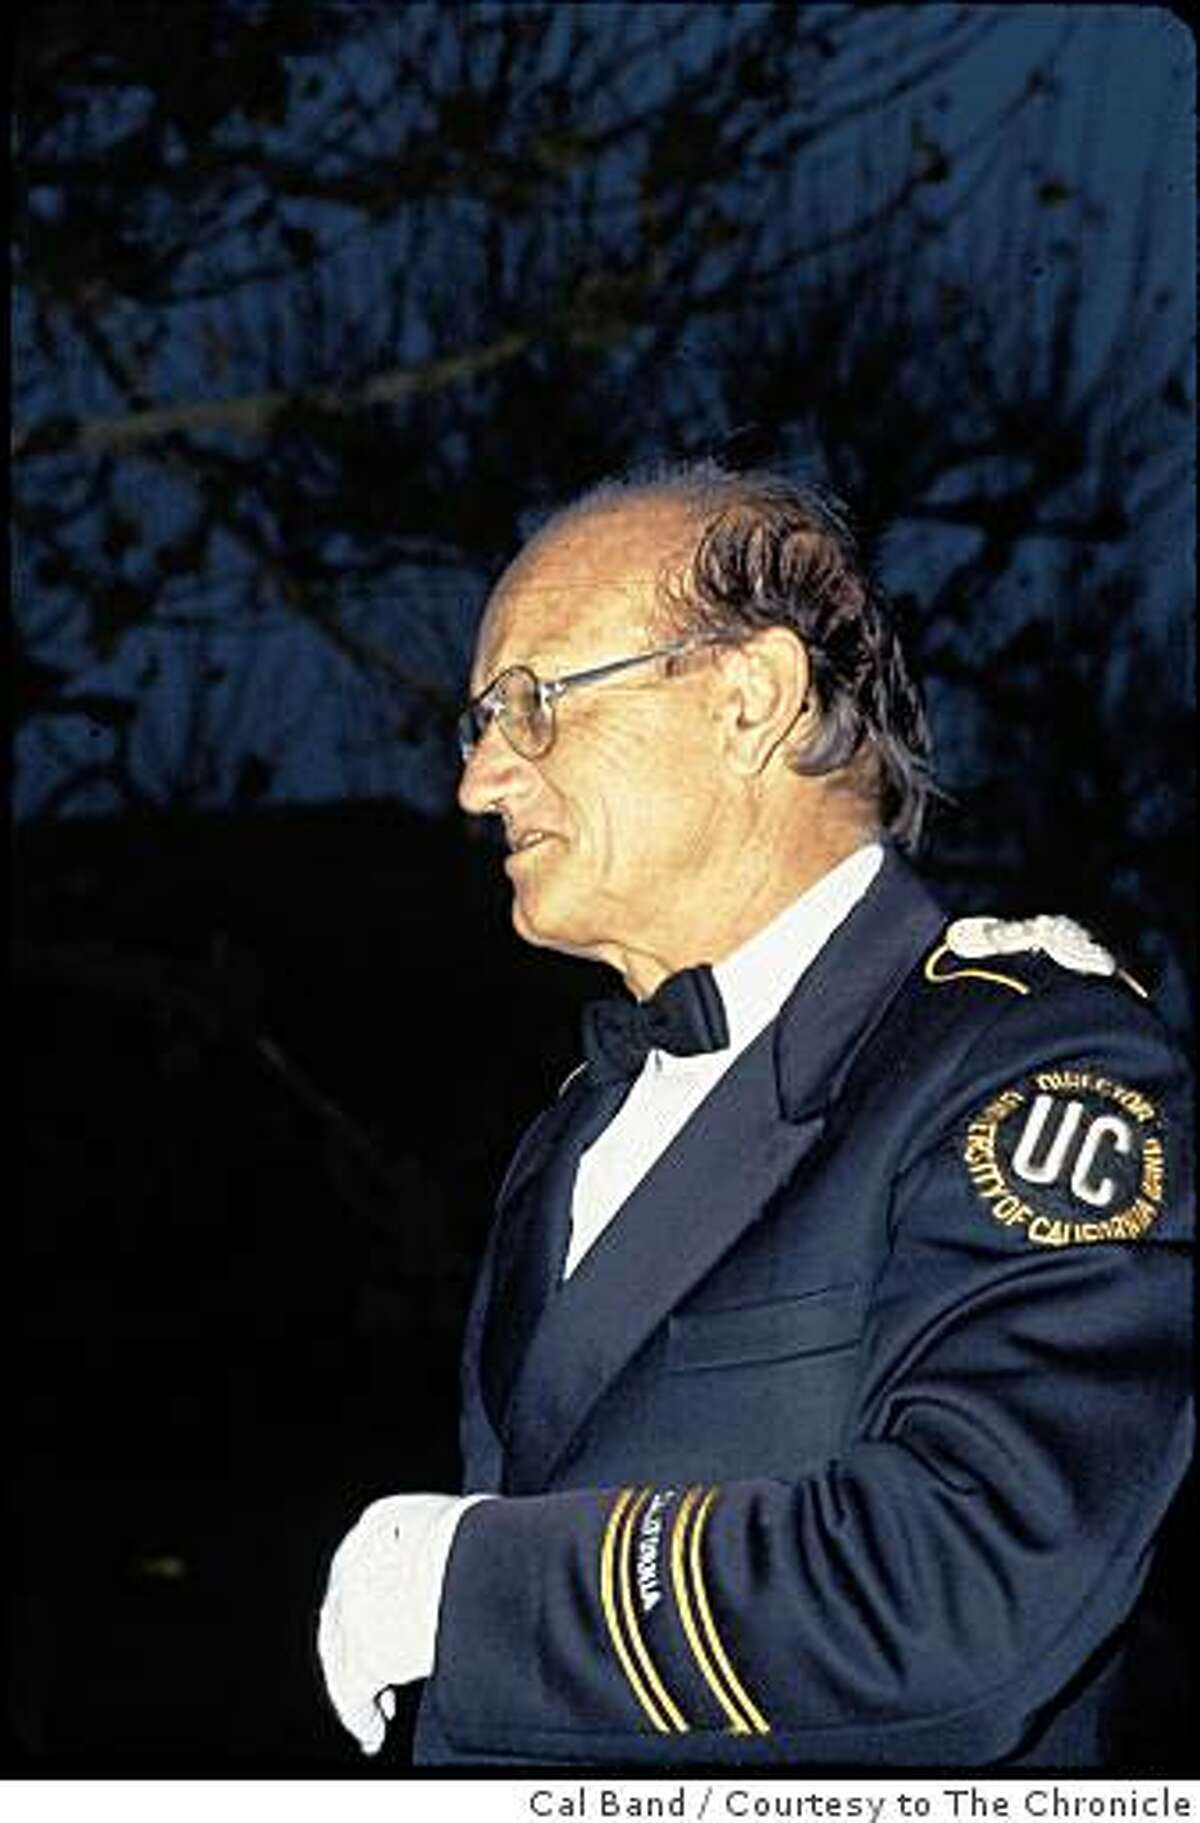 Robert Briggs, who was the director of the University of California Marching Band for 24 years and a beloved member of the Cal Band family for much of his life, died Sept. 17, 2008 from complications following surgery. He was 81.